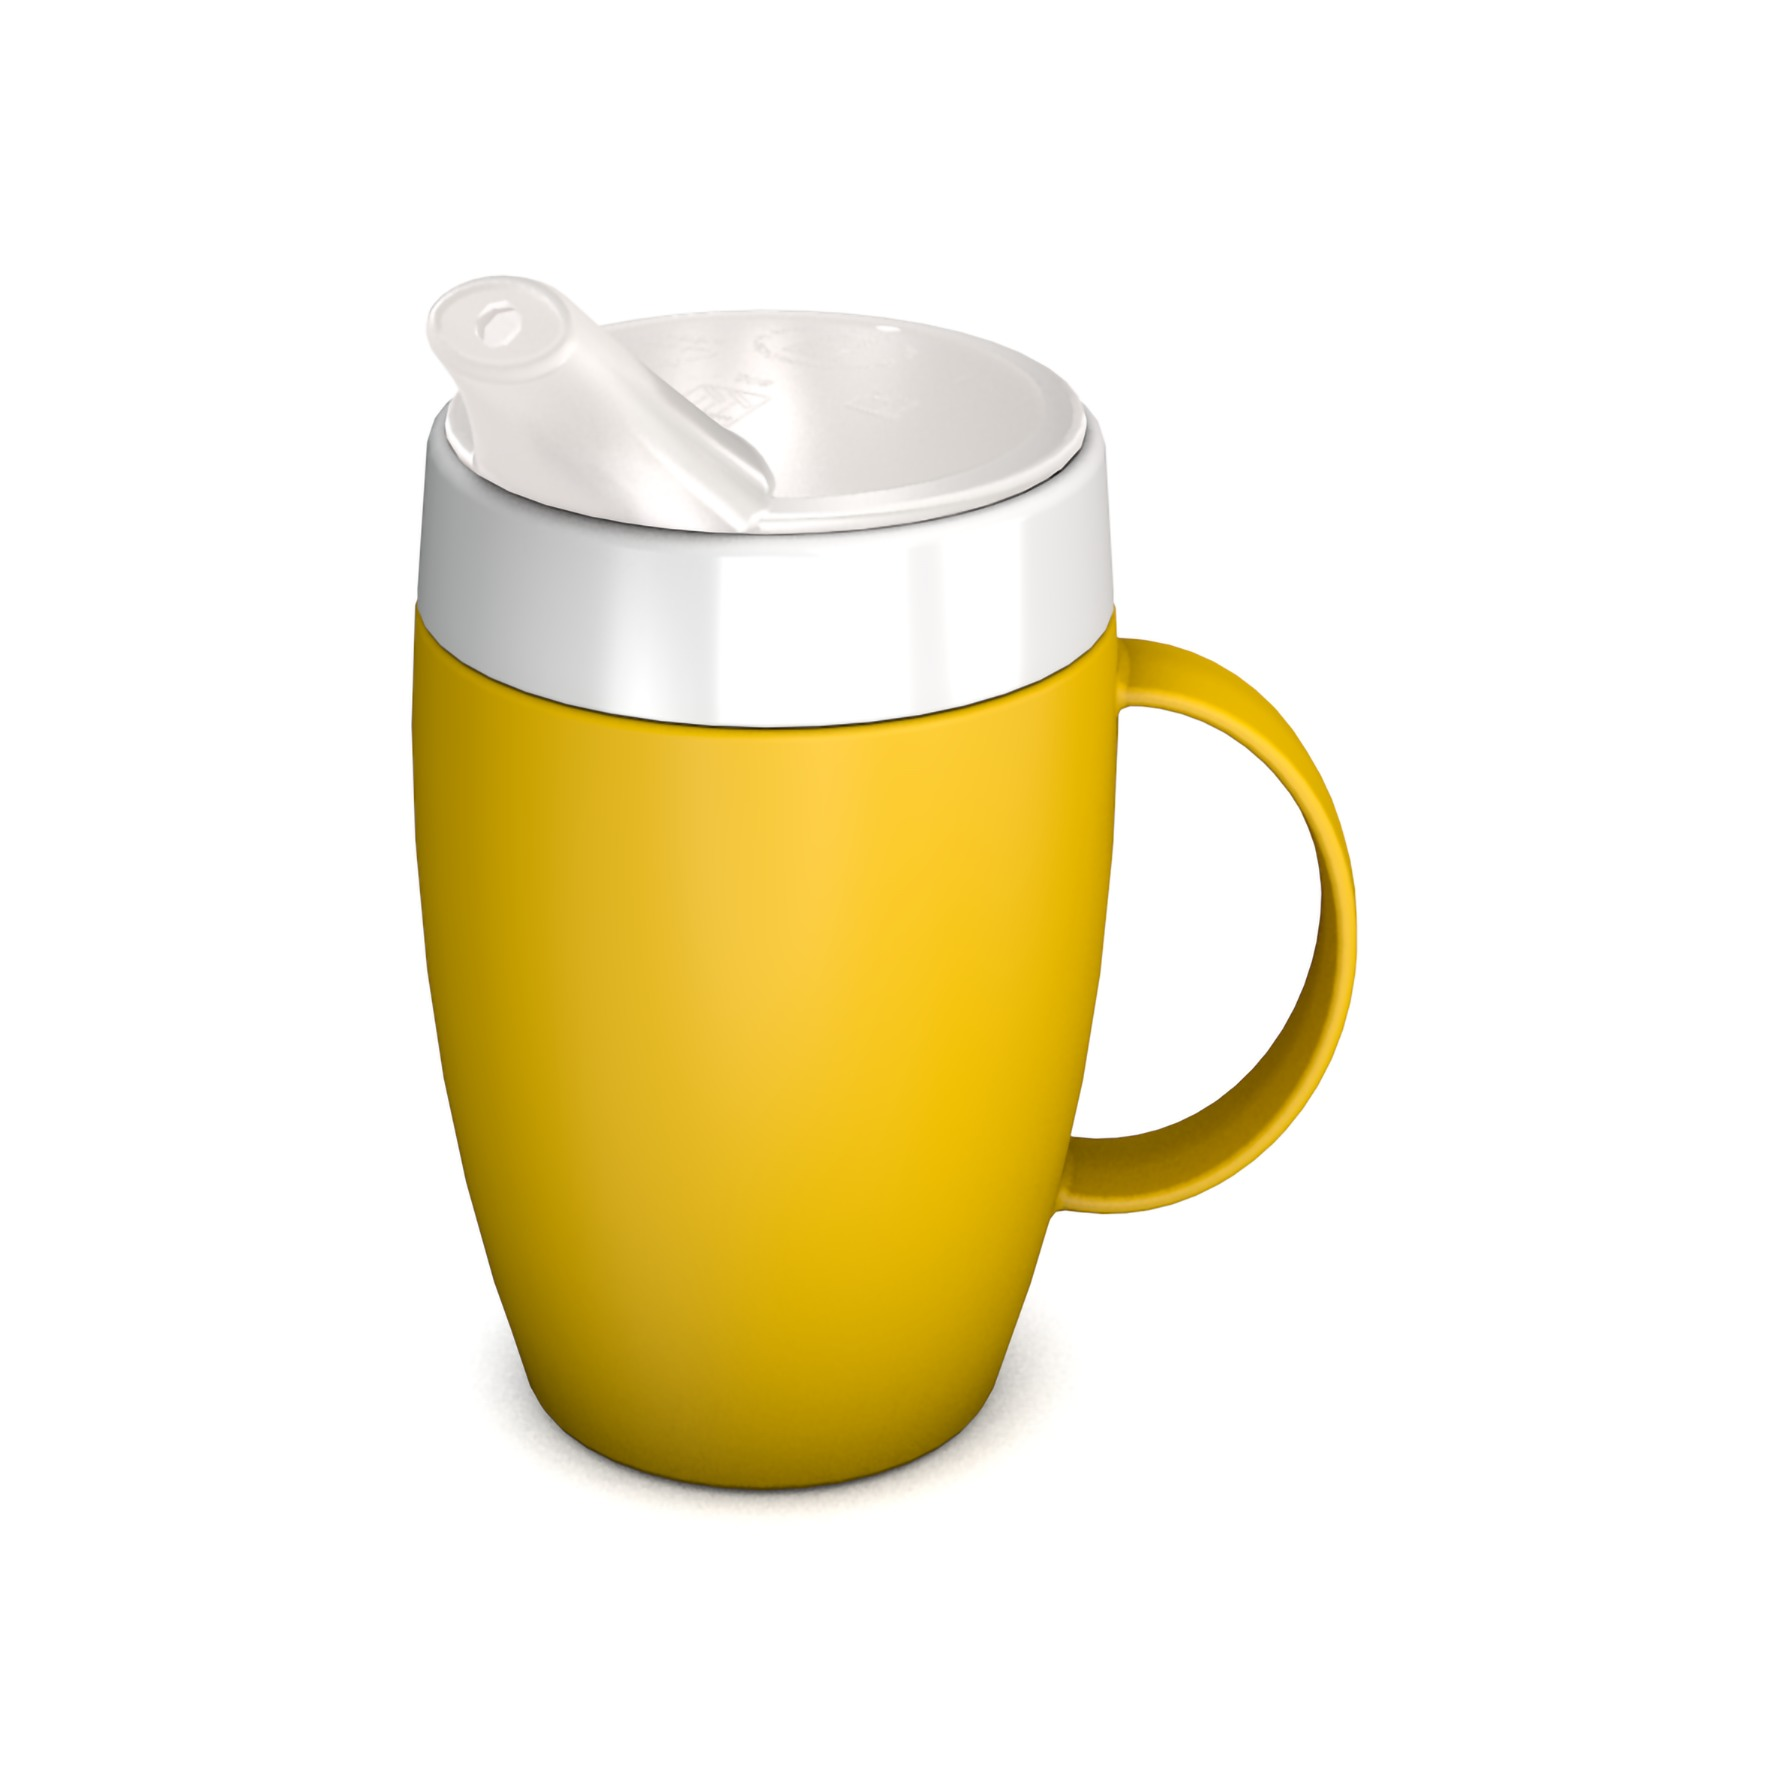 Mug with Internal Cone 140 ml with Spouted Lid